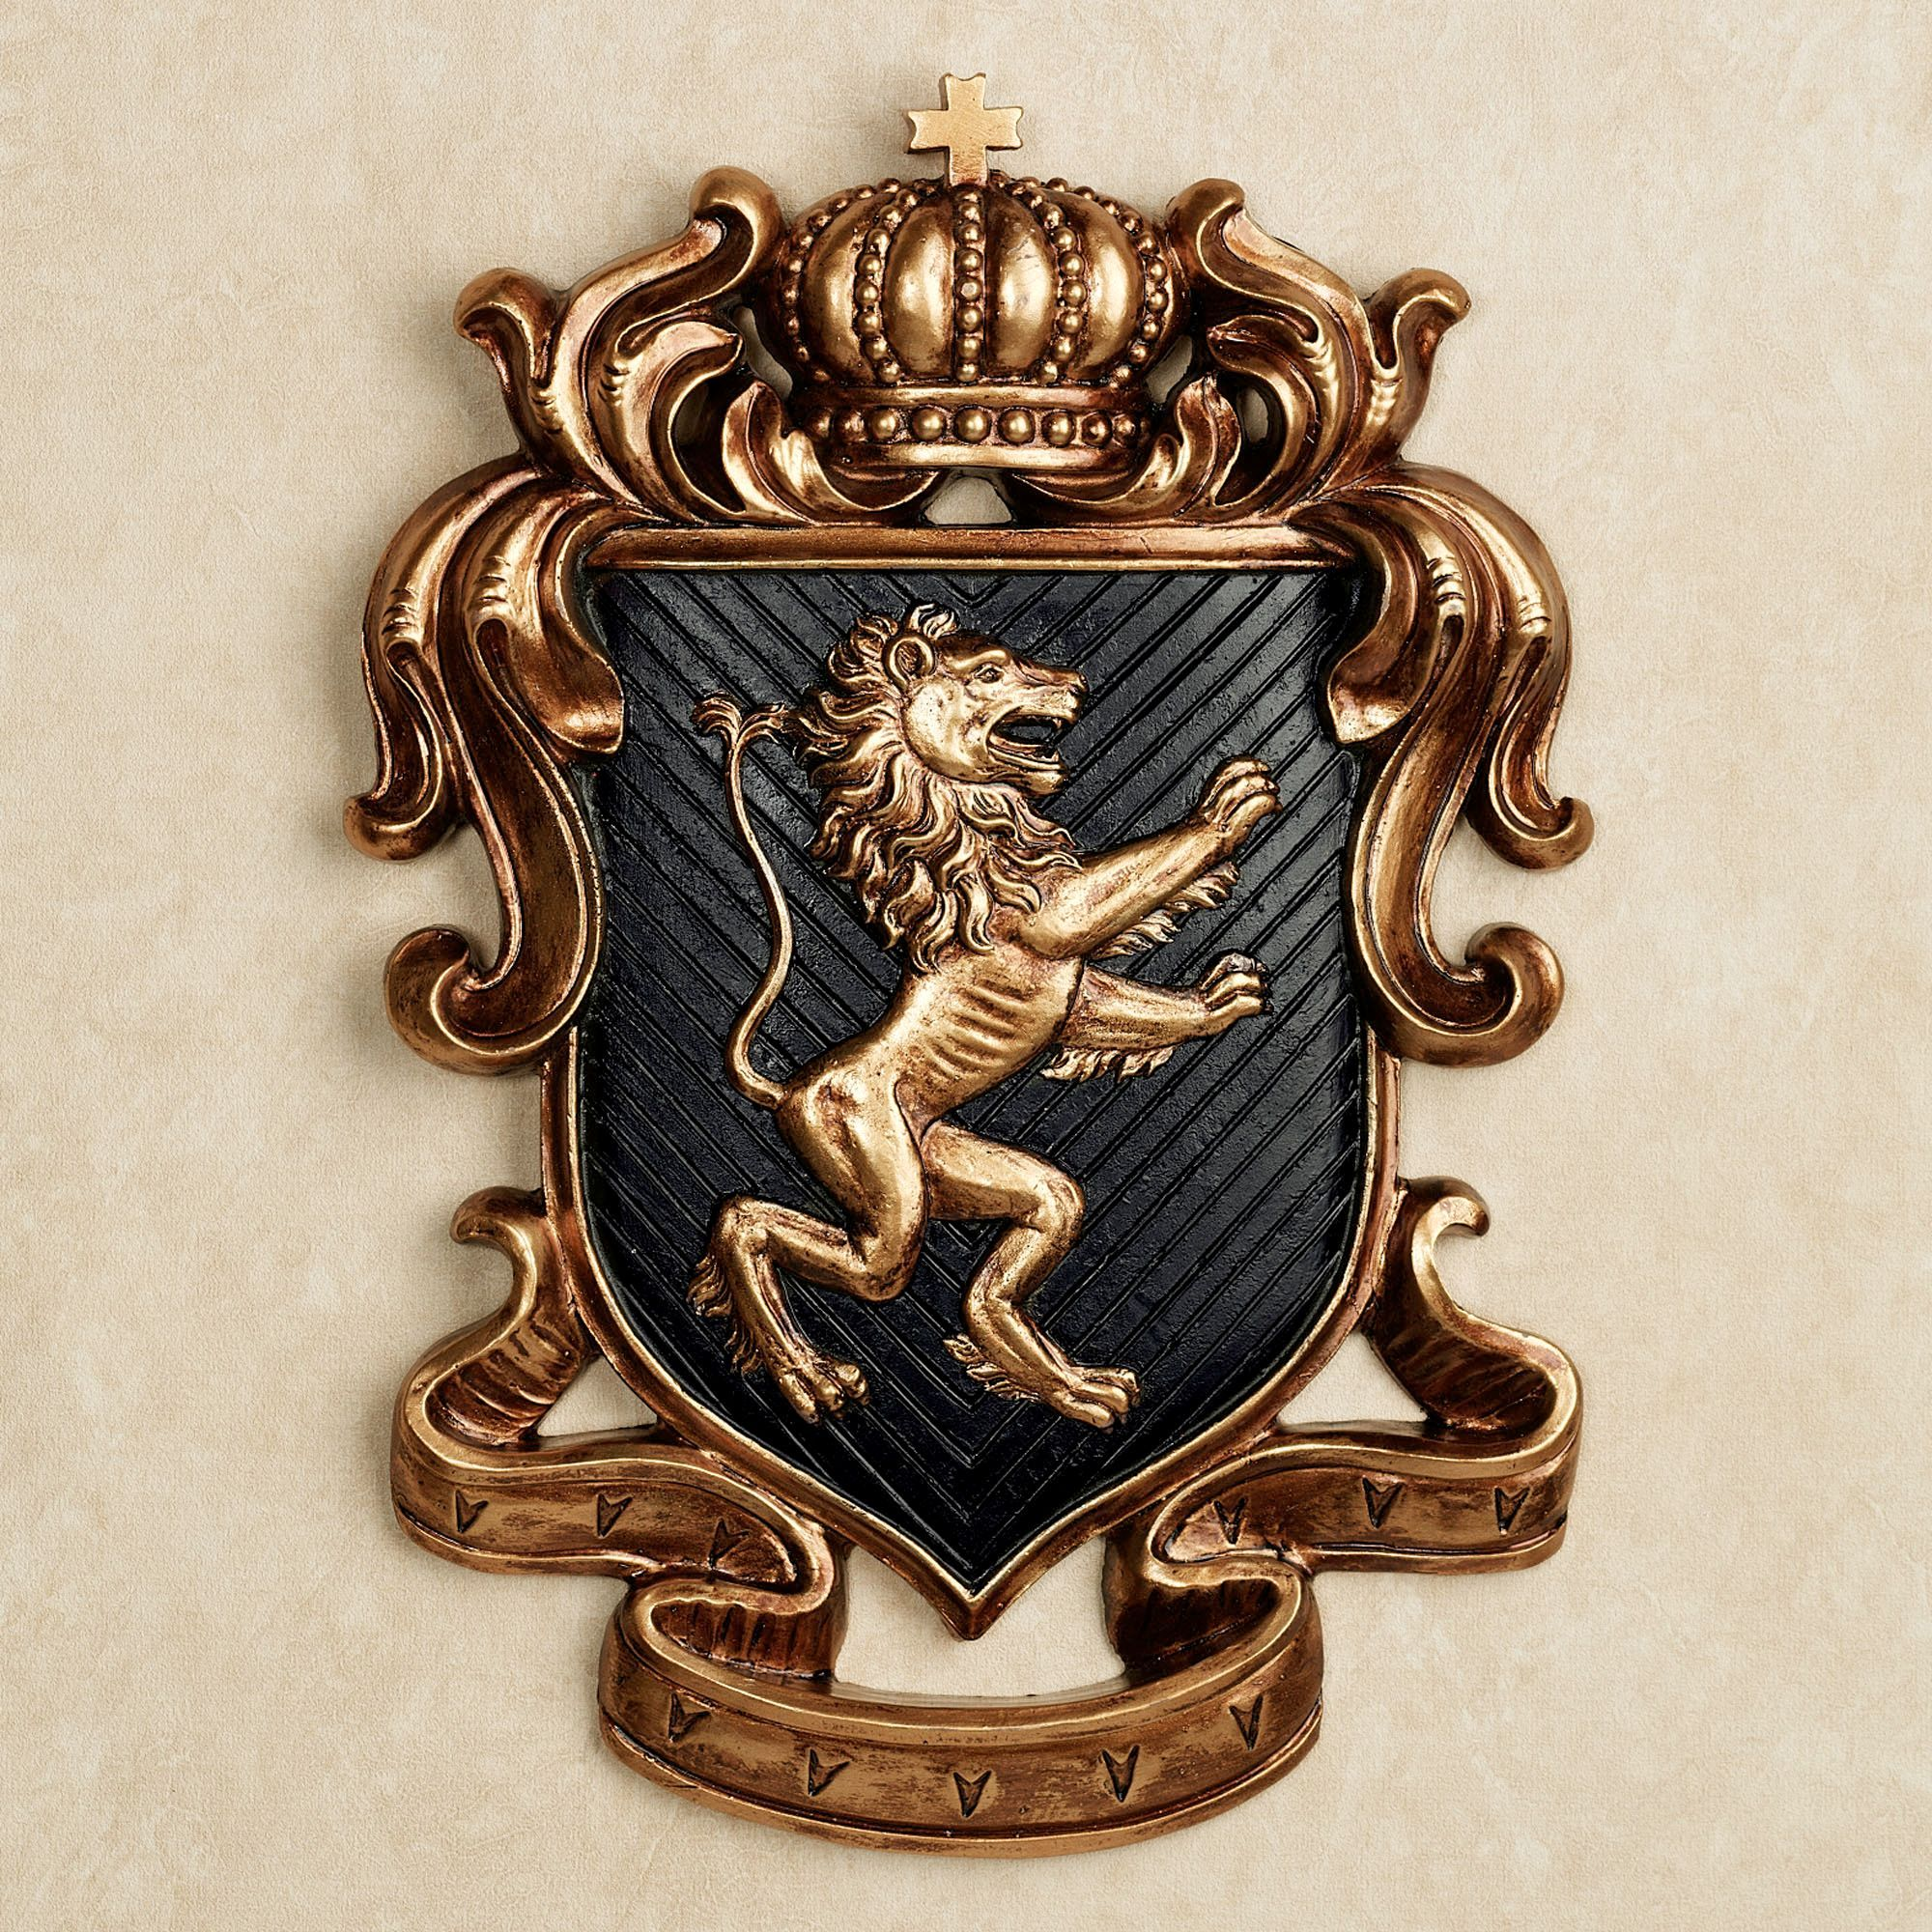 Decorative Wall Plaques lion heart coat of arms wall plaque | lions and walls